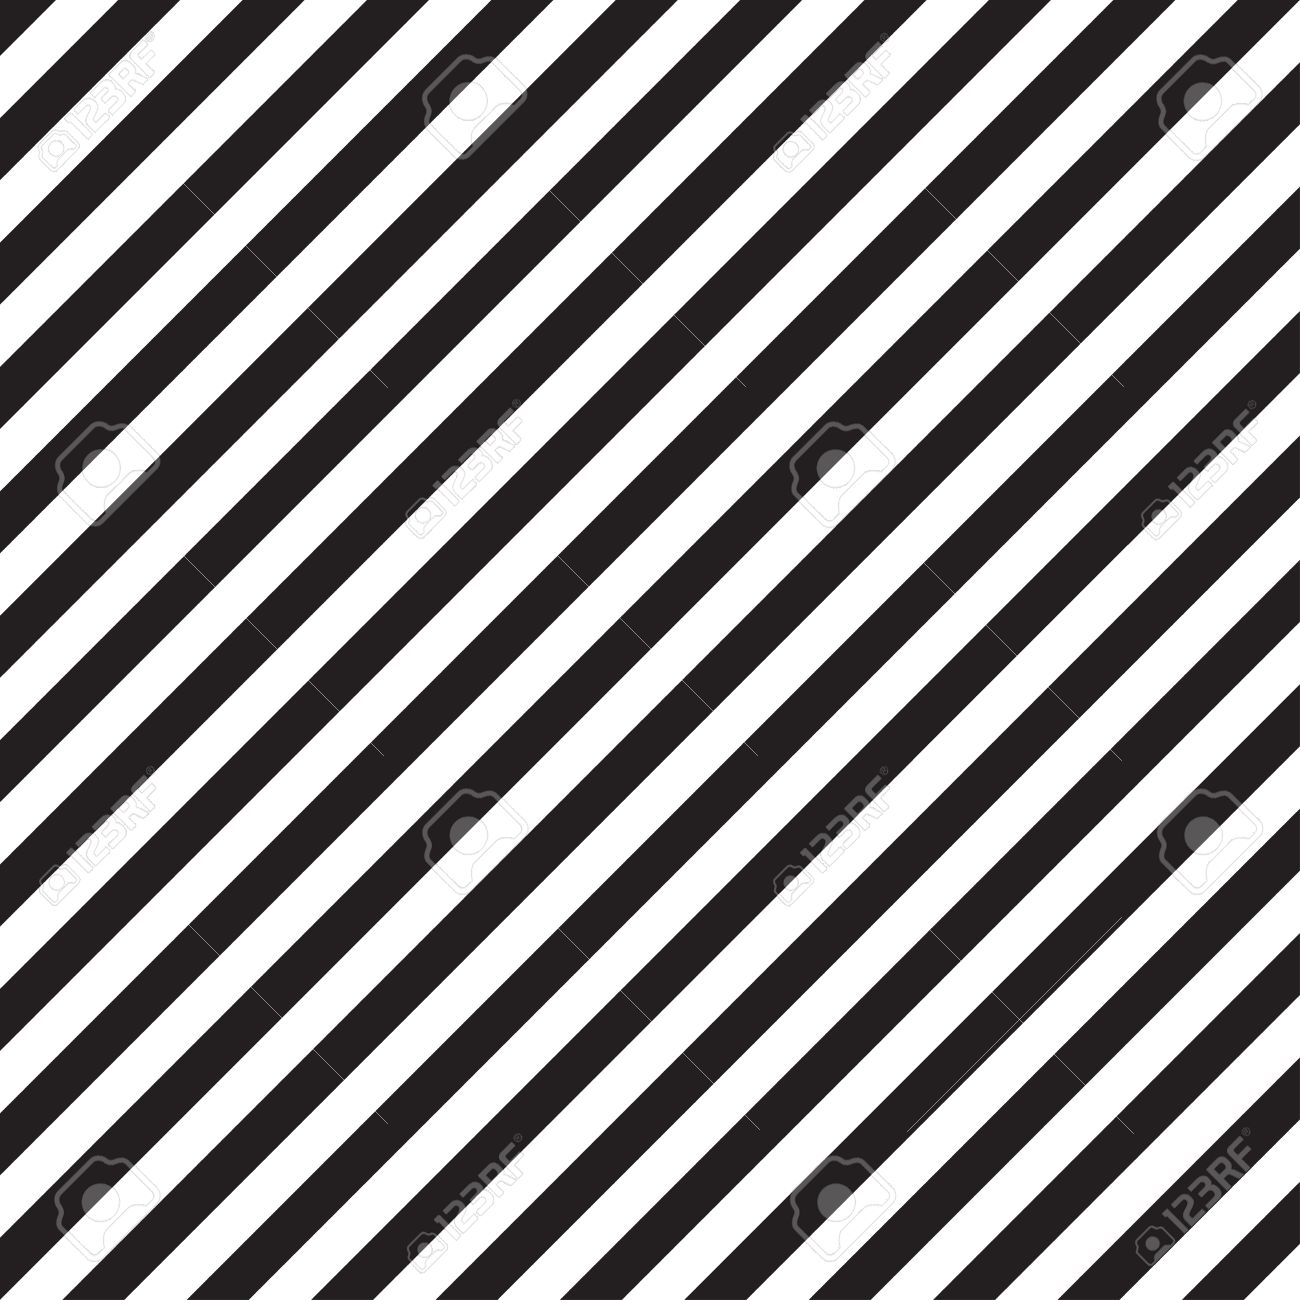 abstract geometric lines with diagonal black and white stripes rh 123rf com vector stripes abstract free vector stripes black and white